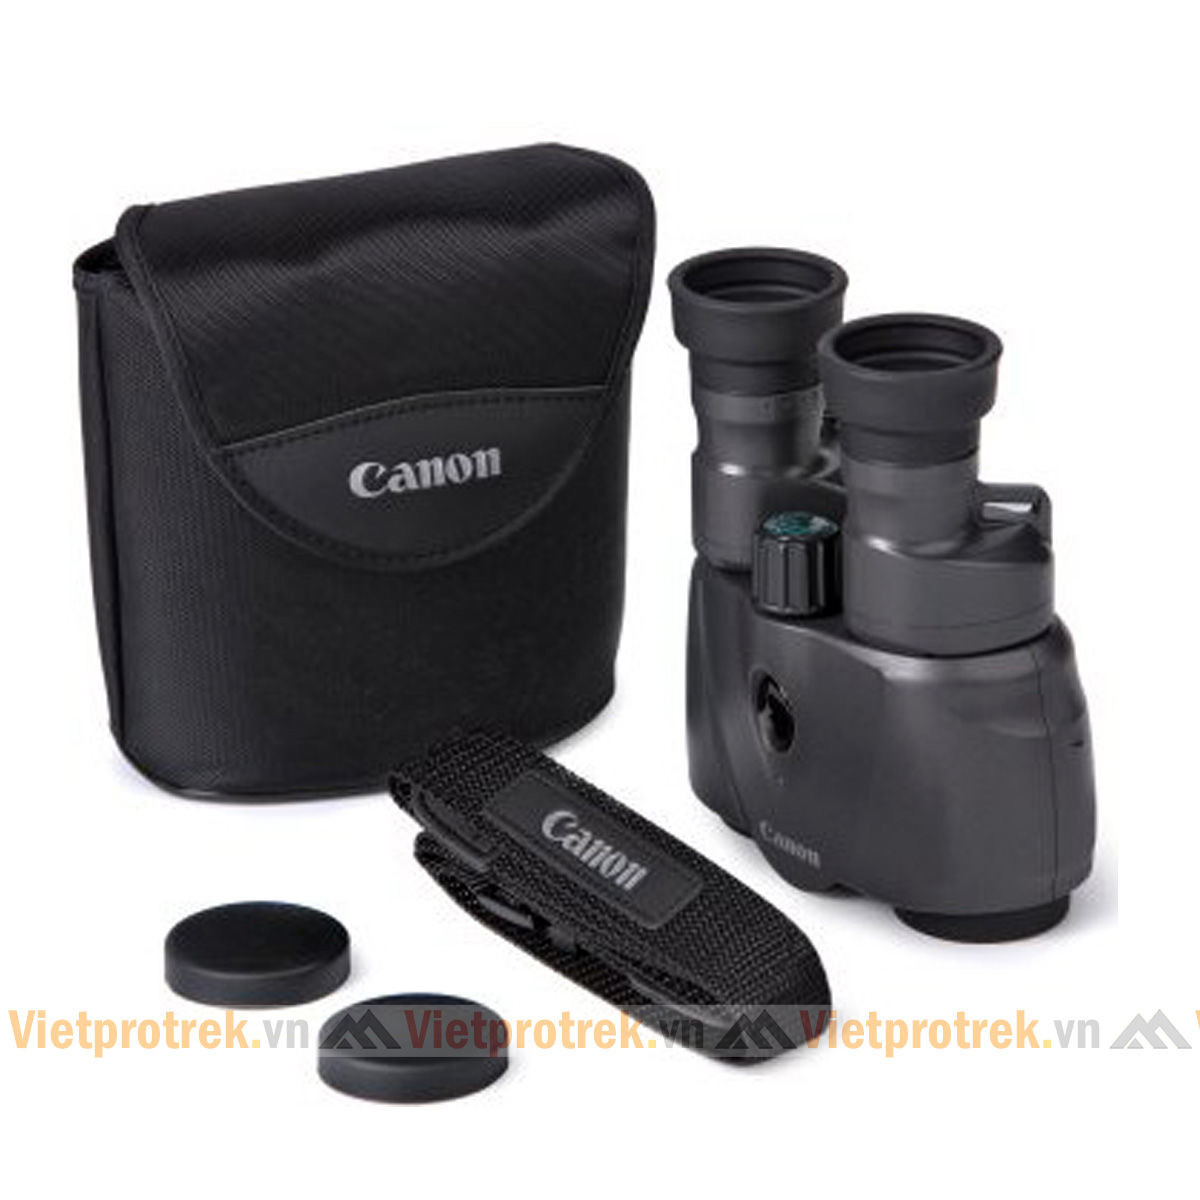 CANON IS 8x25